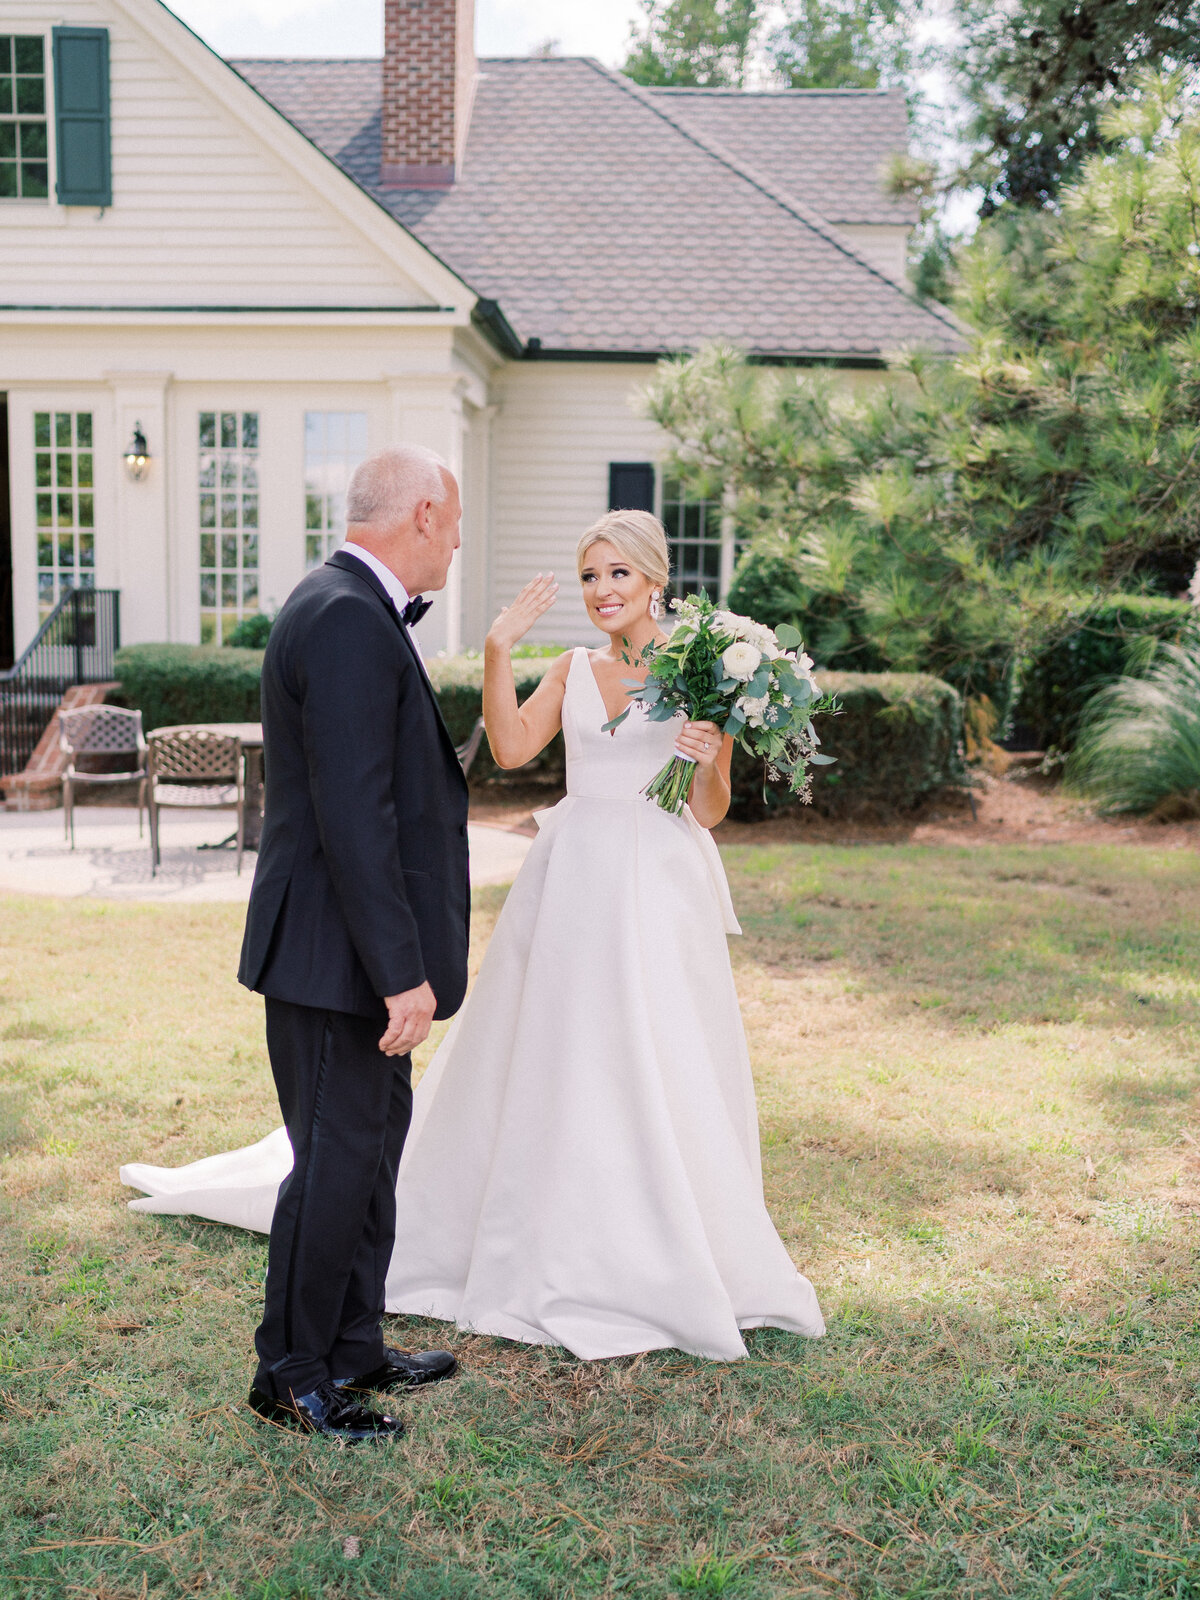 Belfair-Plantation-Bluffton-Hilton-Head-Island-Wedding-Philip-Casey-Photo-04